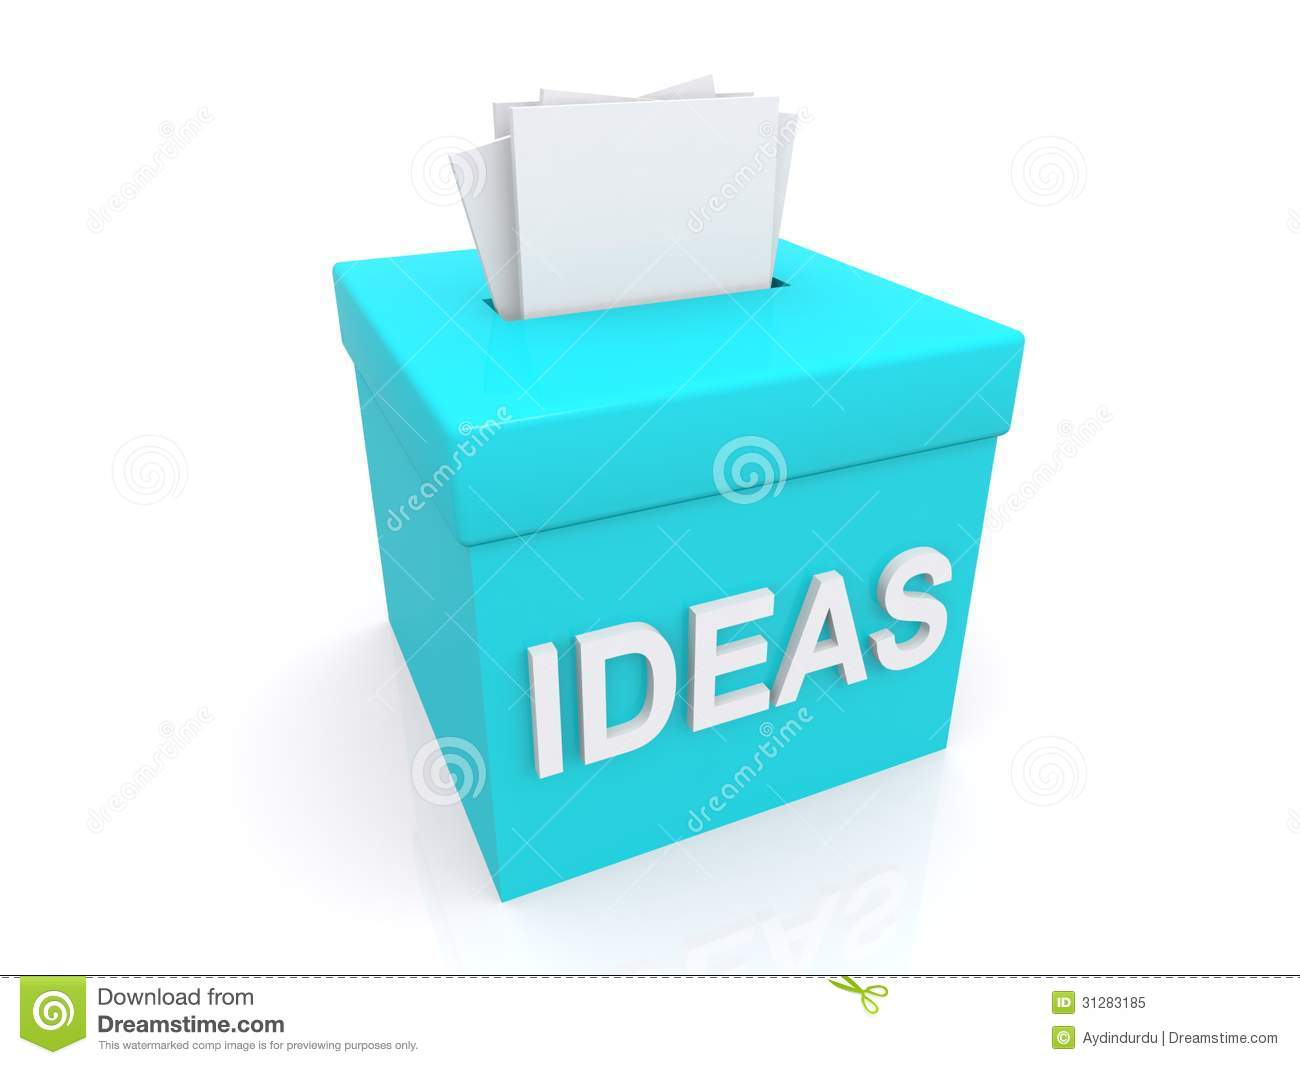 Suggestions in ideas box